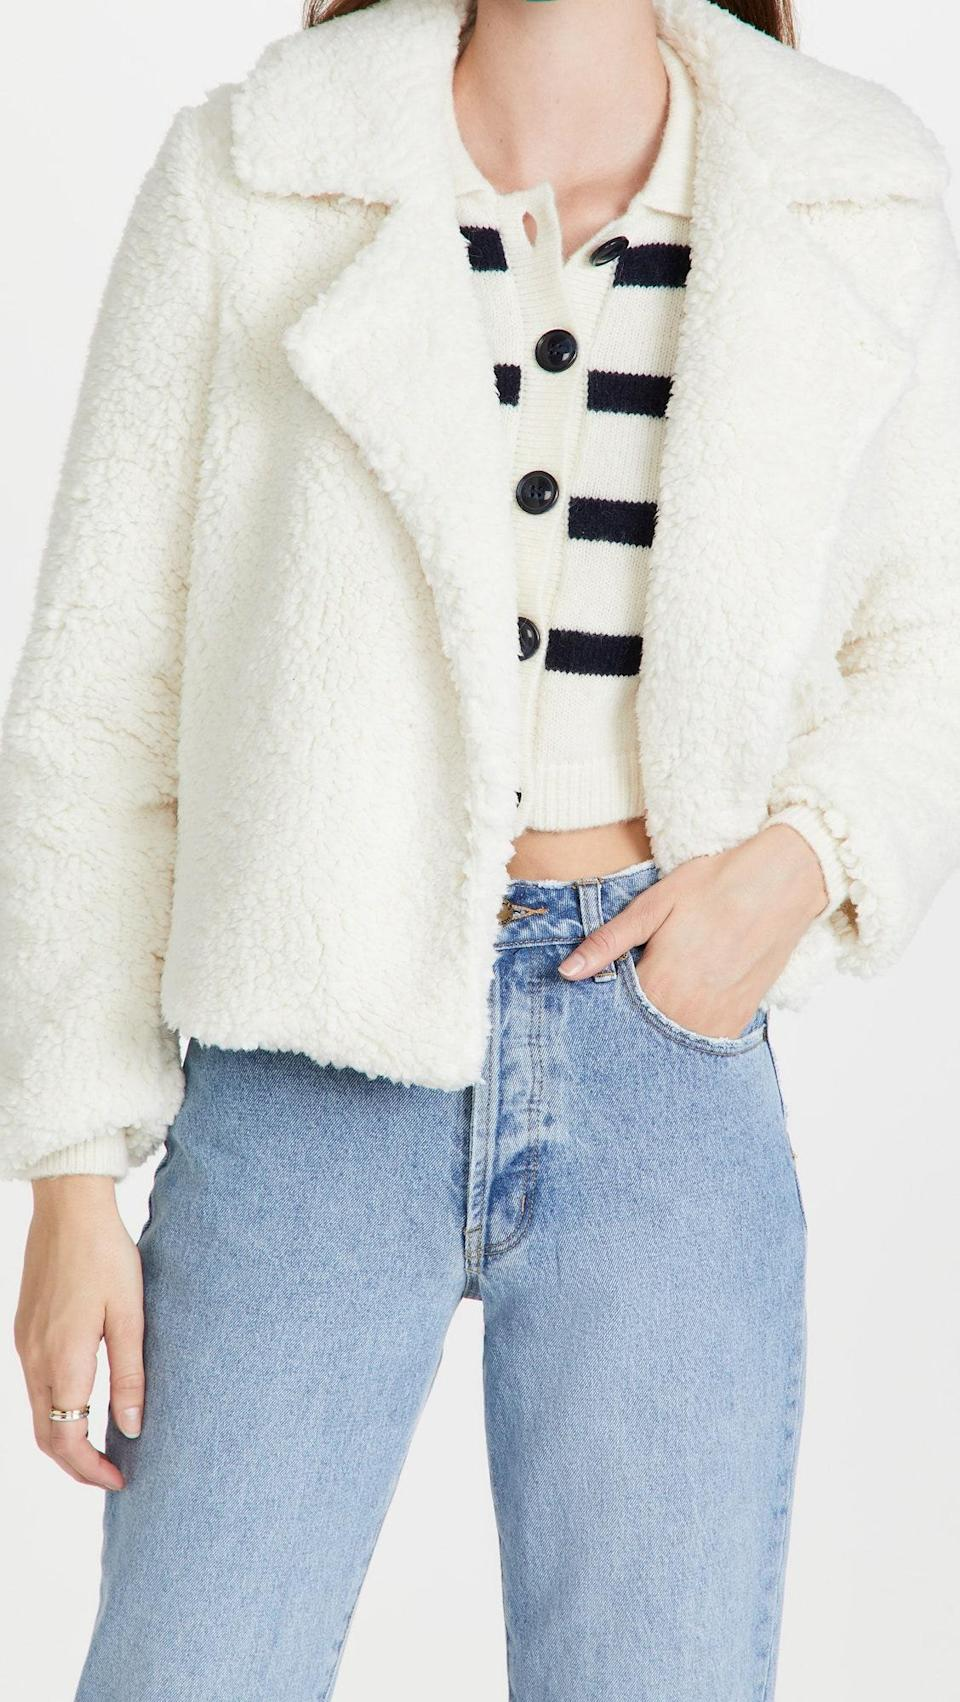 """This cropped number will complement just about any fall outfit you put together, from printed long-sleeve midis to baby tees and <a href=""""https://www.glamour.com/gallery/where-to-buy-your-next-pair-of-jeans?mbid=synd_yahoo_rss"""" rel=""""nofollow noopener"""" target=""""_blank"""" data-ylk=""""slk:baggy jeans"""" class=""""link rapid-noclick-resp"""">baggy jeans</a>. $89, Shopbop. <a href=""""https://www.shopbop.com/teddy-she-goes-jacket-bb/vp/v=1/1587305046.htm"""" rel=""""nofollow noopener"""" target=""""_blank"""" data-ylk=""""slk:Get it now!"""" class=""""link rapid-noclick-resp"""">Get it now!</a>"""